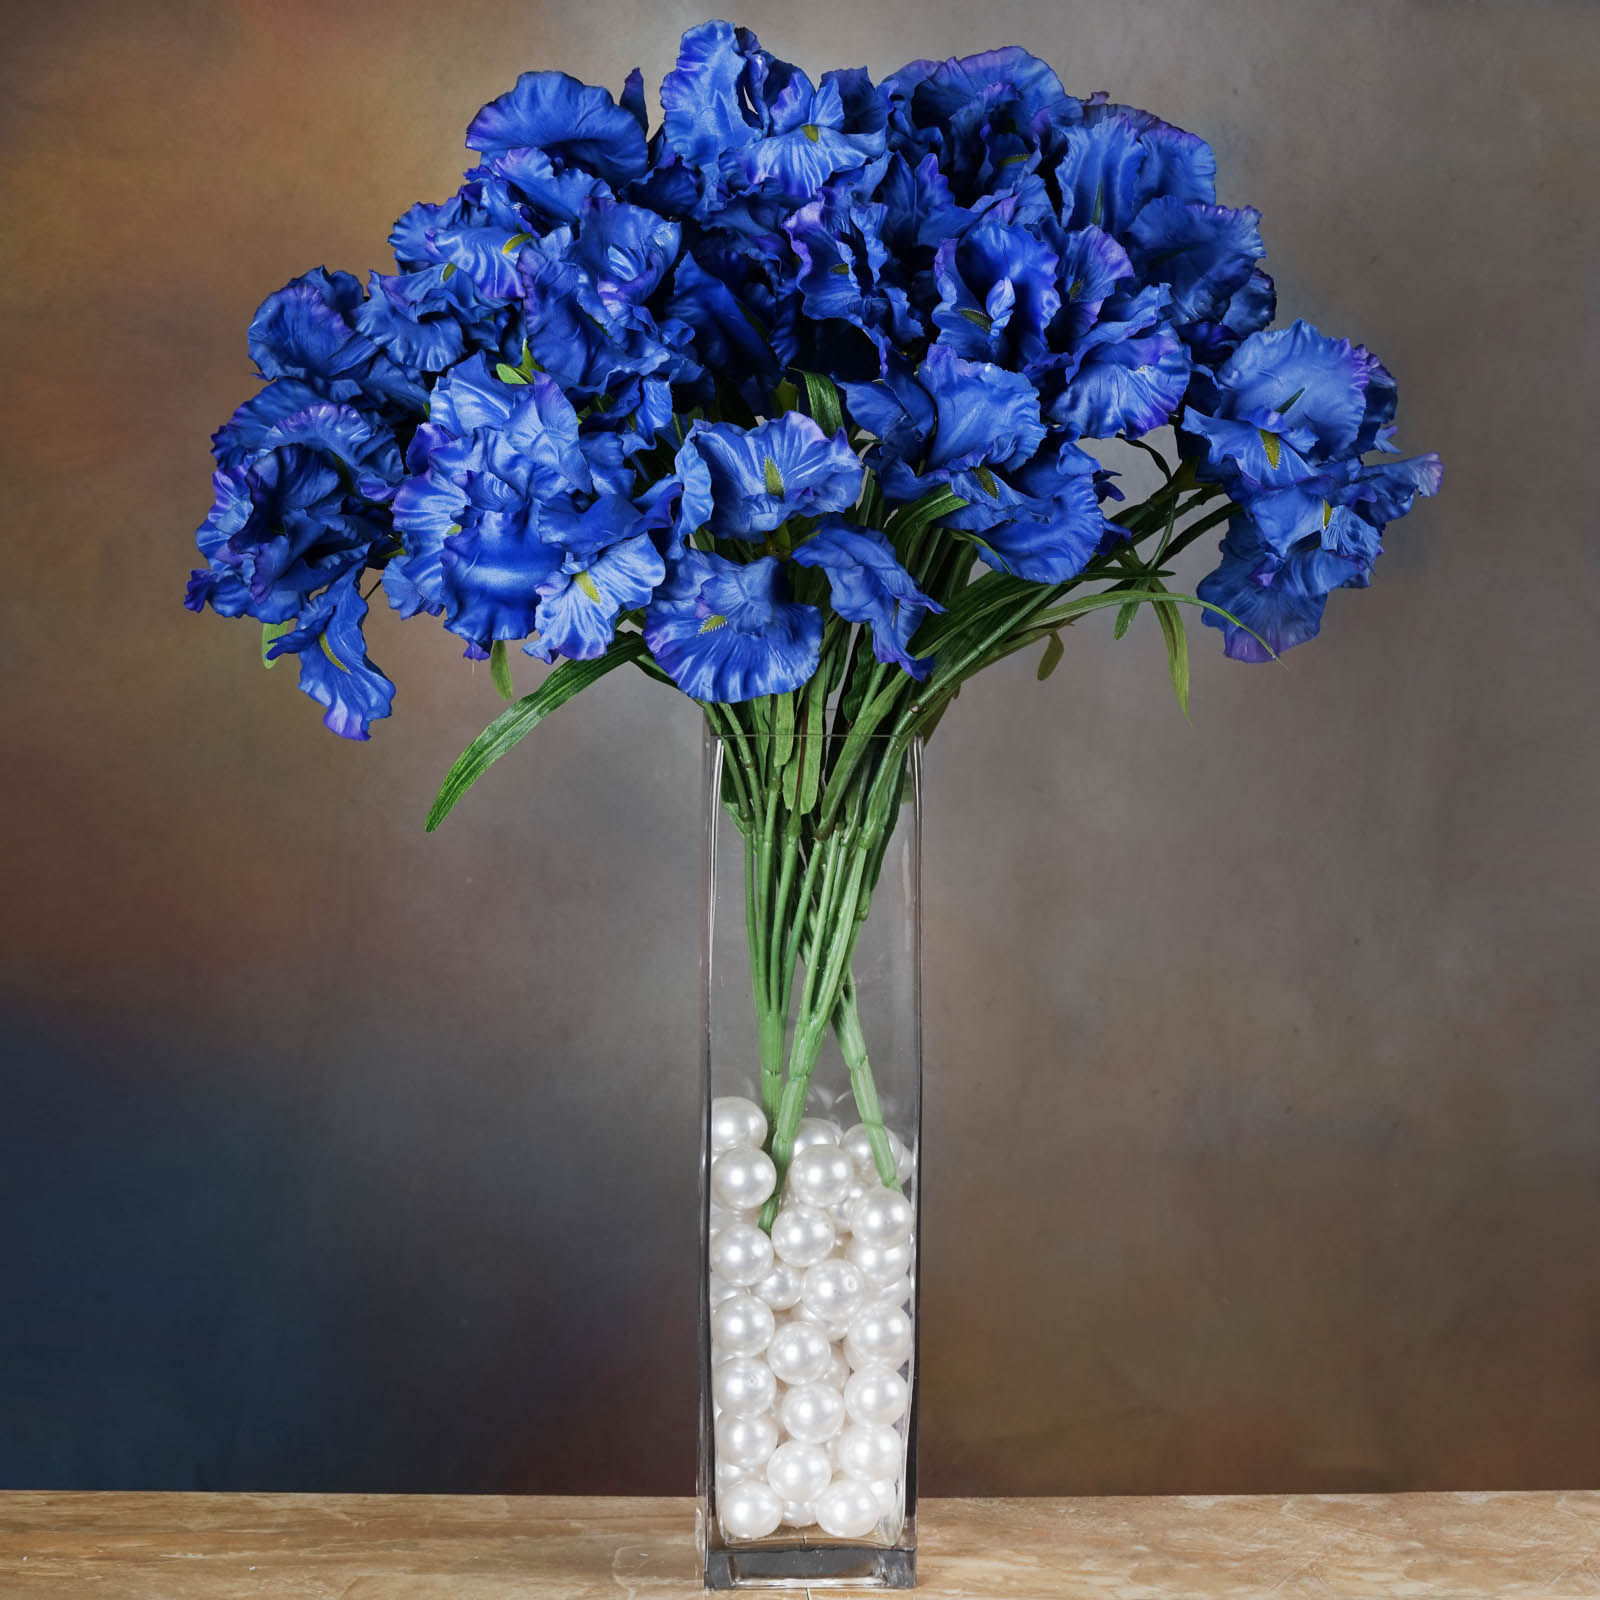 36 Large 7 Wide Silk Iris Flowers 4 Bushes For Wedding Bouquets